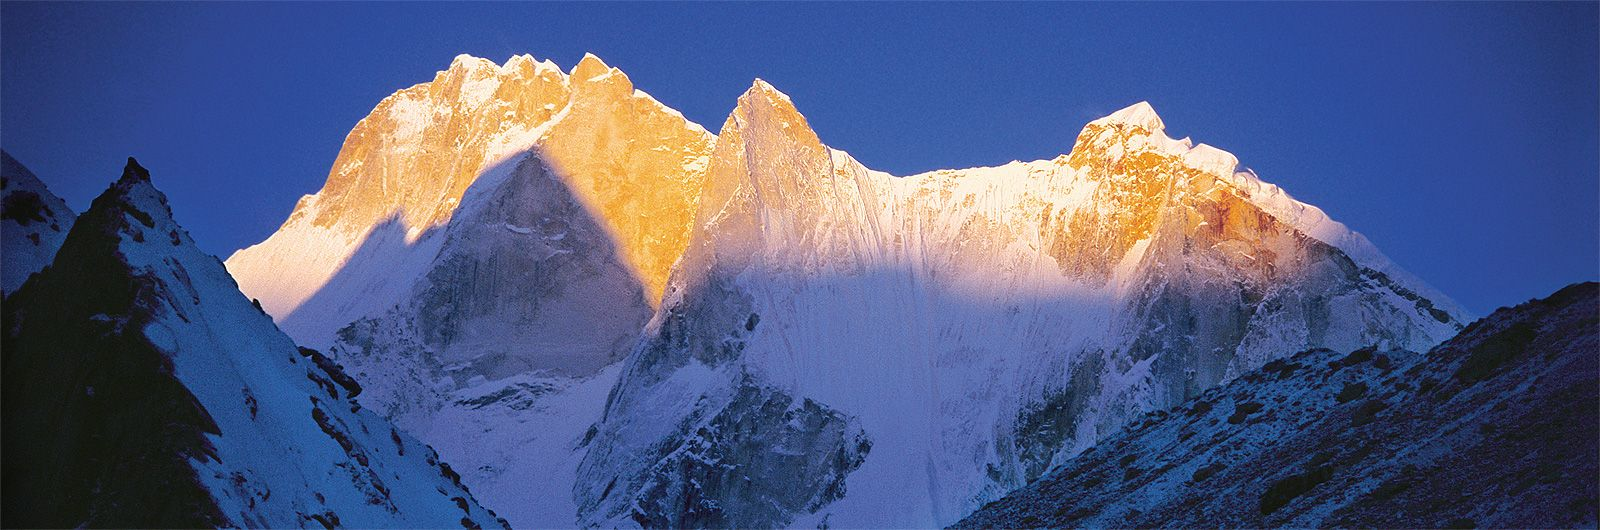 Nepal: Trek Everest Campo Base por Gokyo desde Jiri